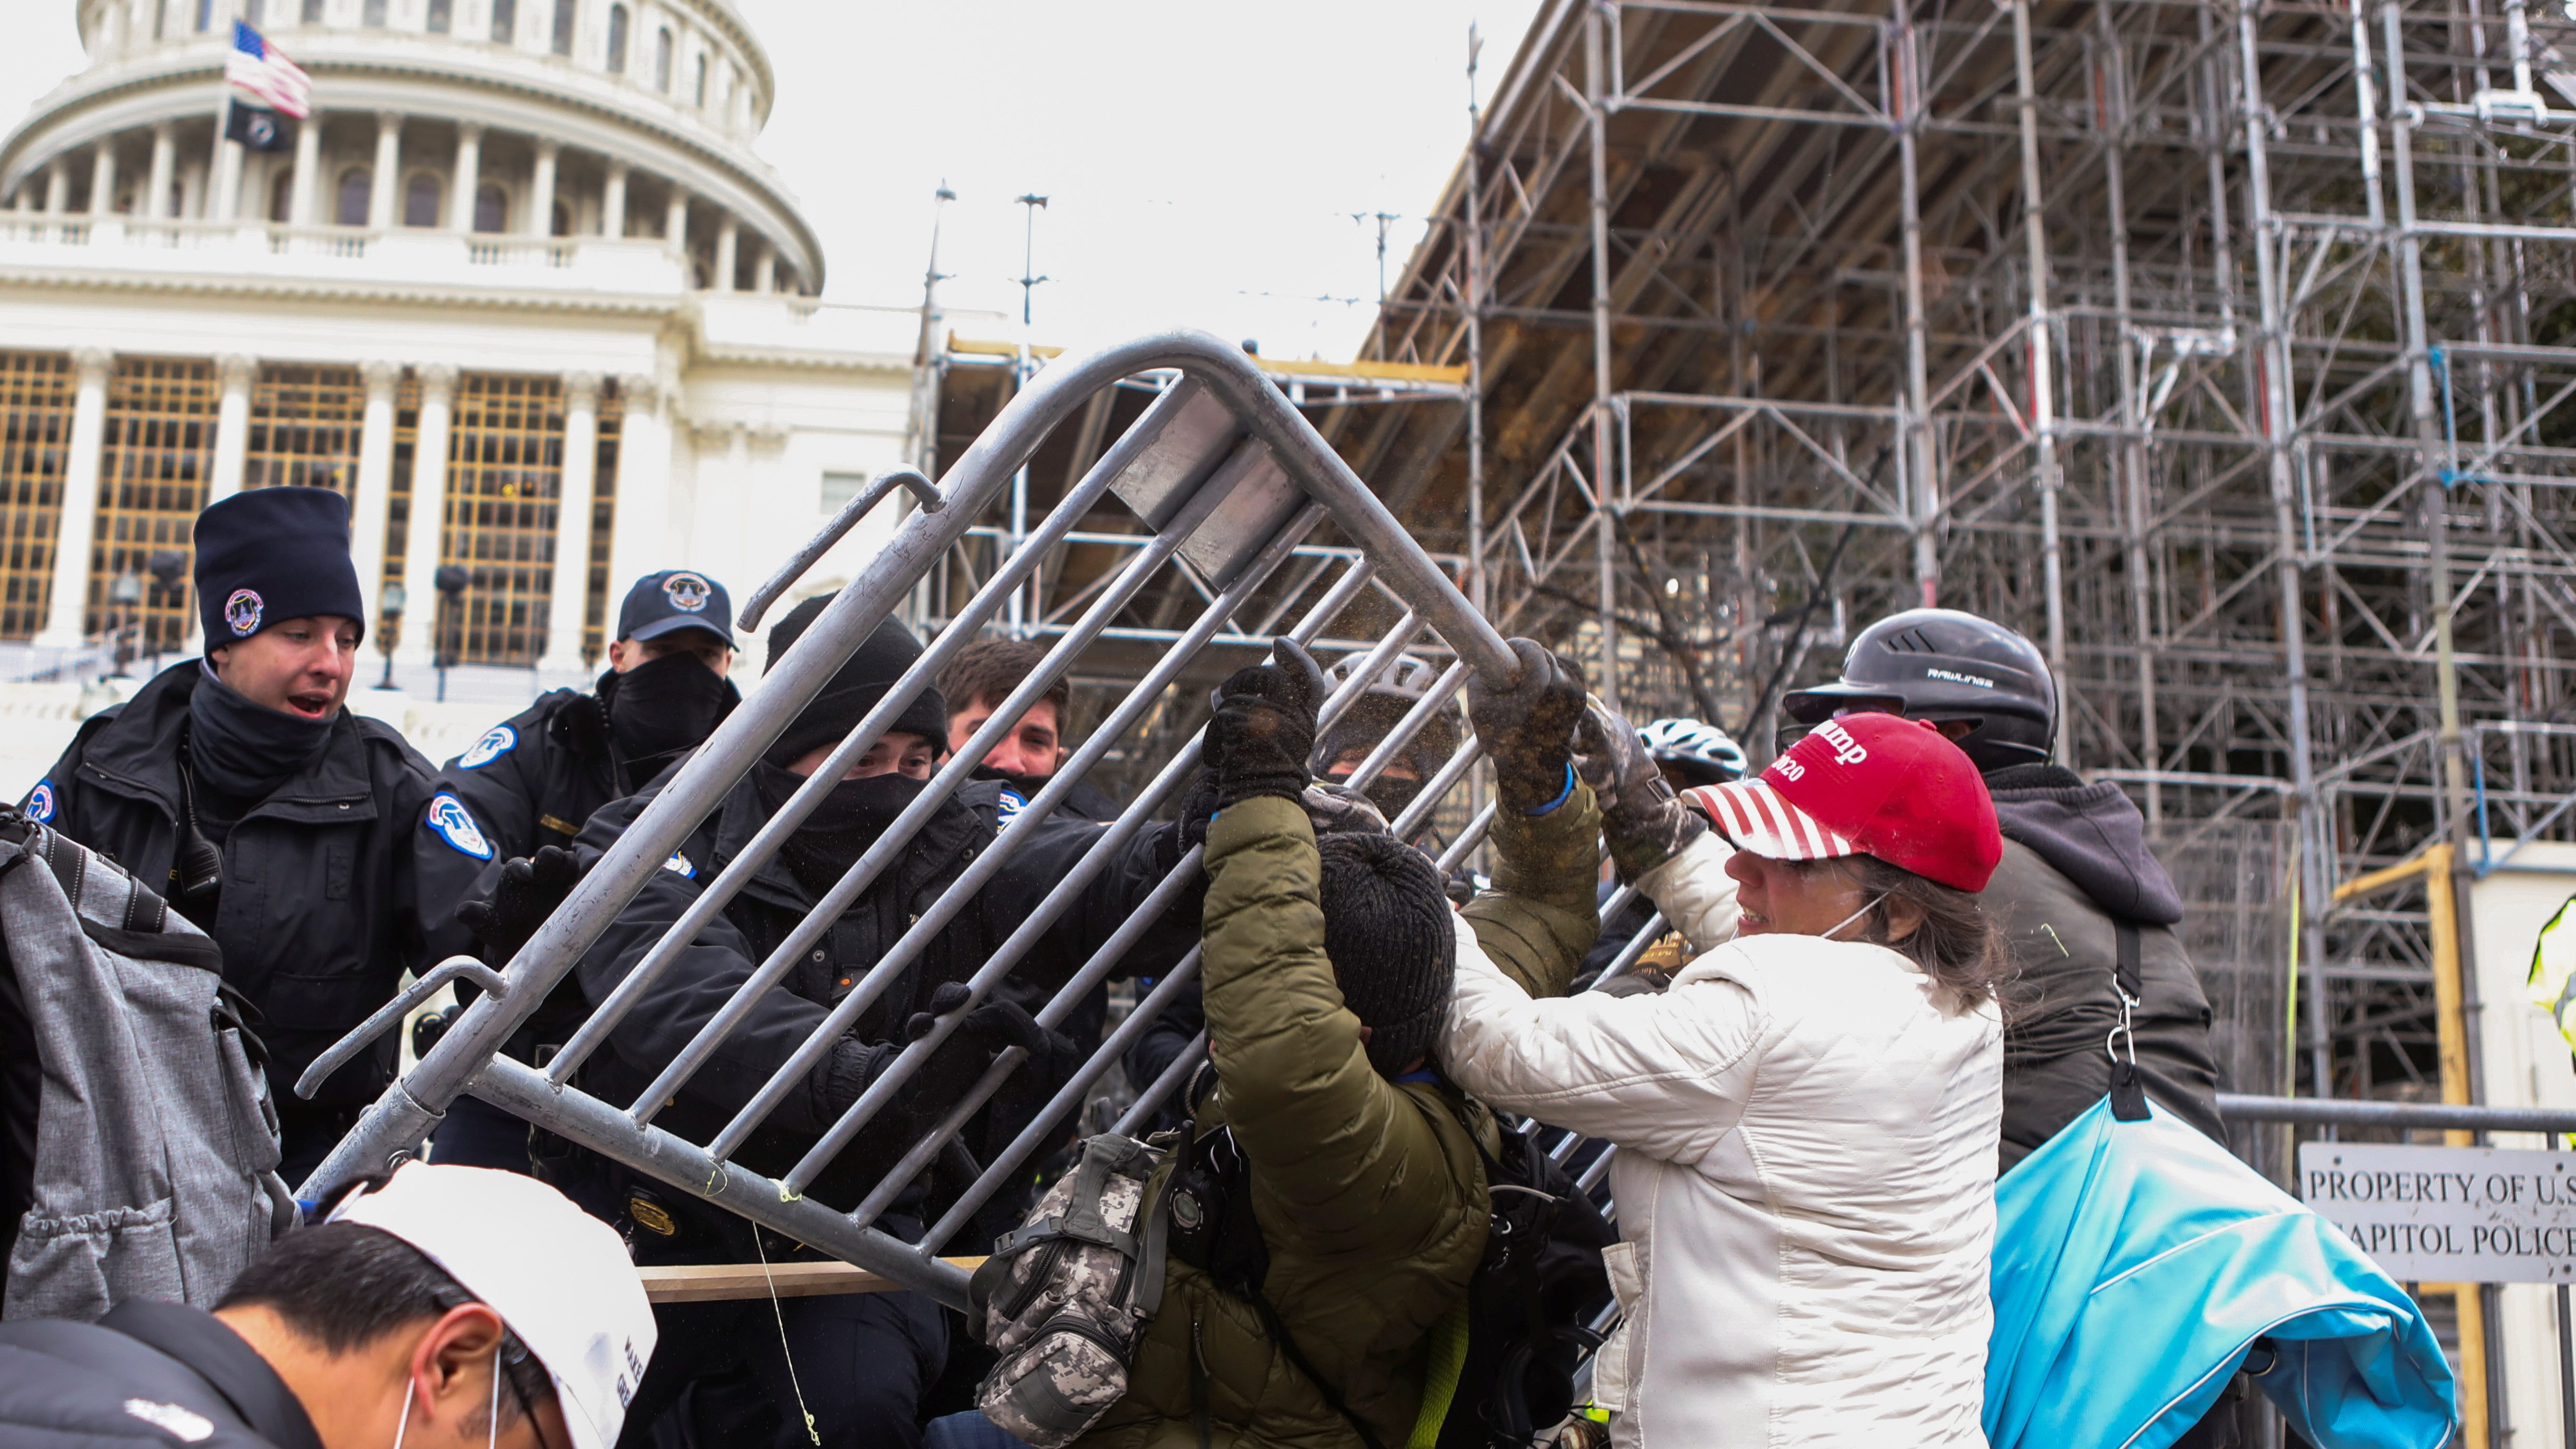 Law enforcement officers push back against supporters of U.S. President Donald Trump attempting to enter U.S. Capitol during a protest against the certification of the 2020 U.S. presidential election results by the U.S. Congress